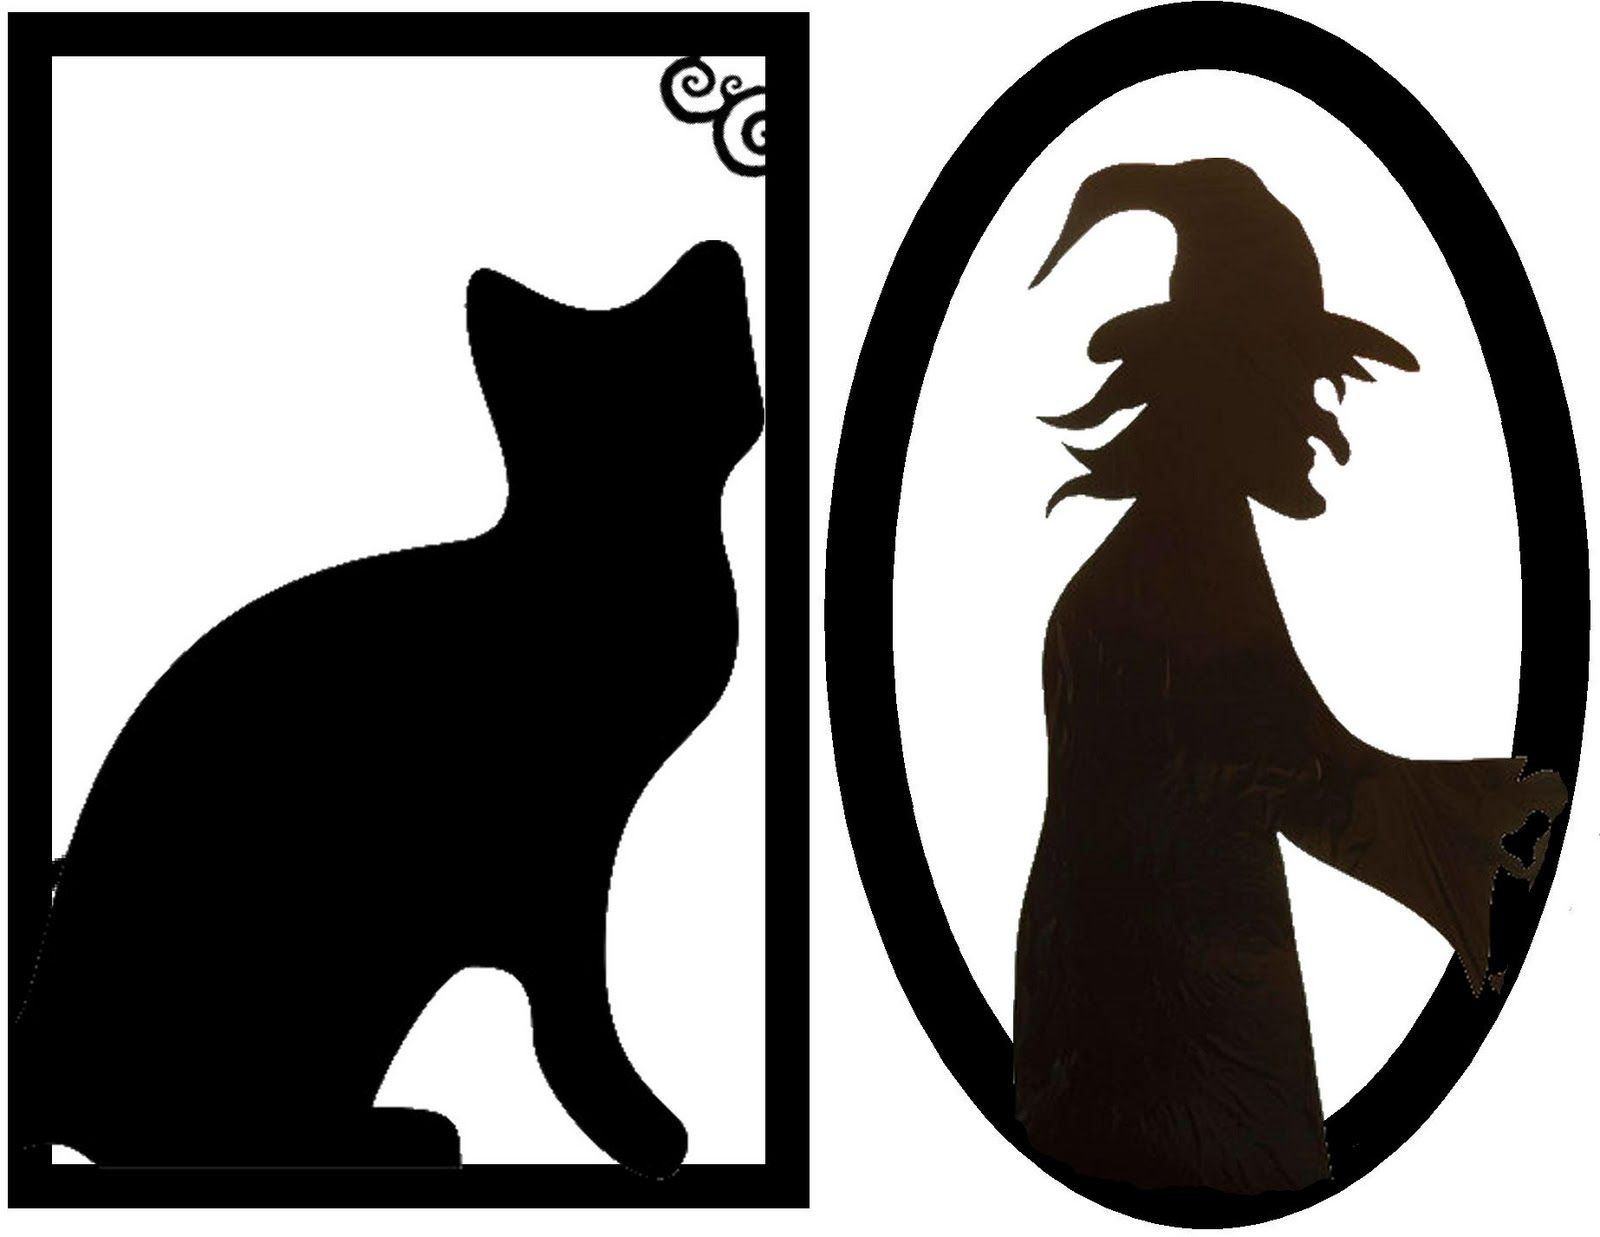 halloween decorations ideas framed creepy silhouette decorations free halloween printable - Halloween Cat Decorations